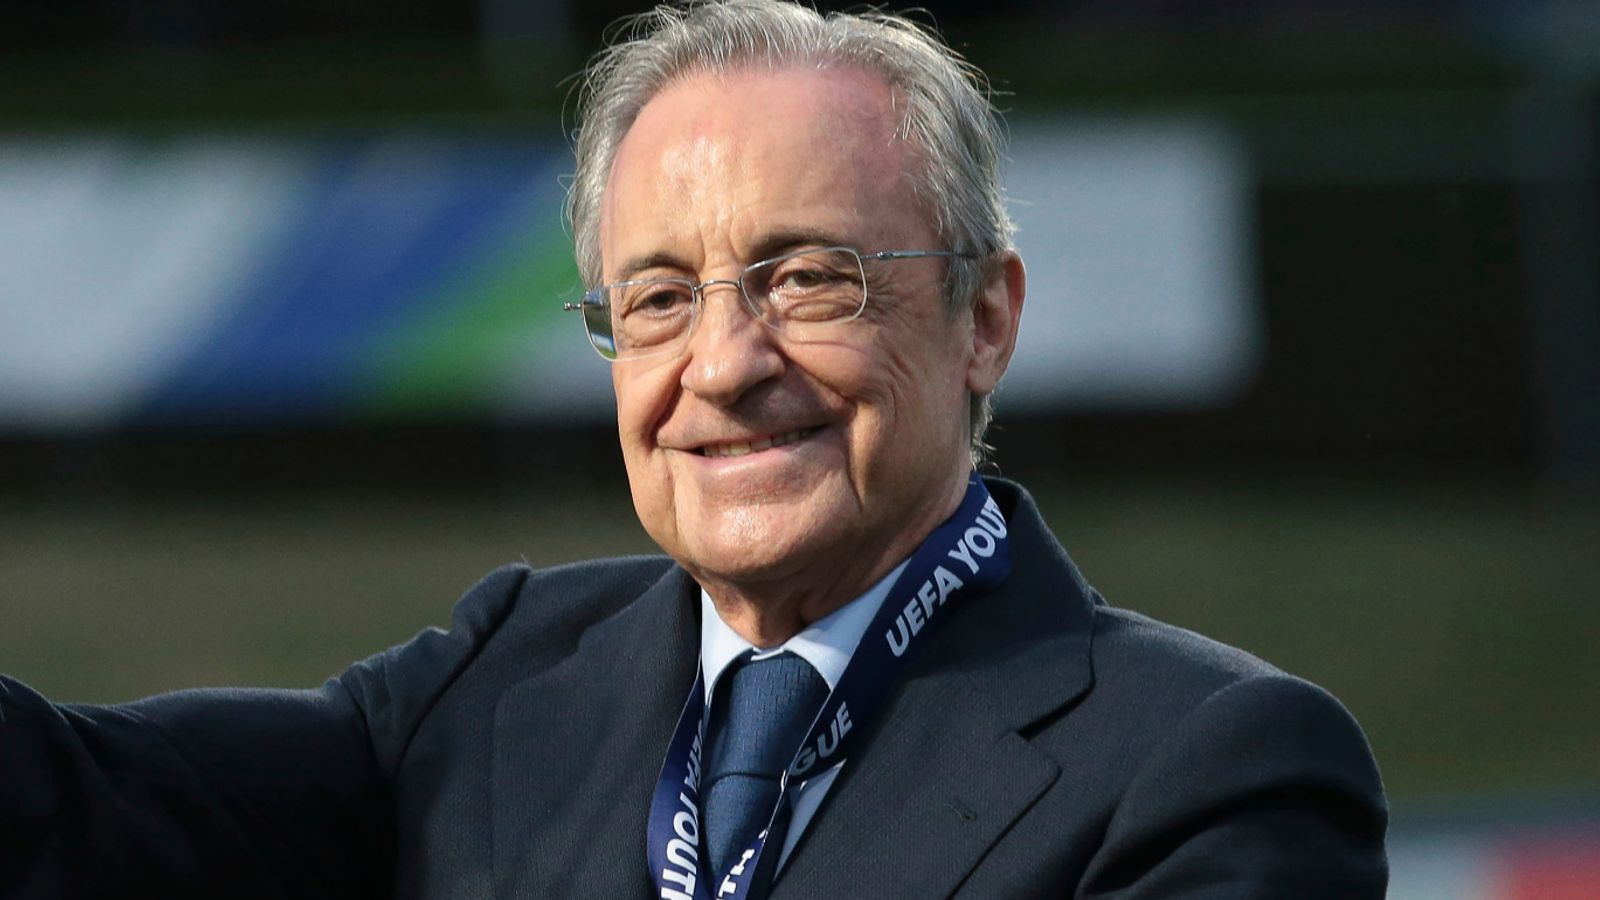 European Super League: Real Madrid president Florentino Perez says 'binding contracts' mean founding clubs cannot leave